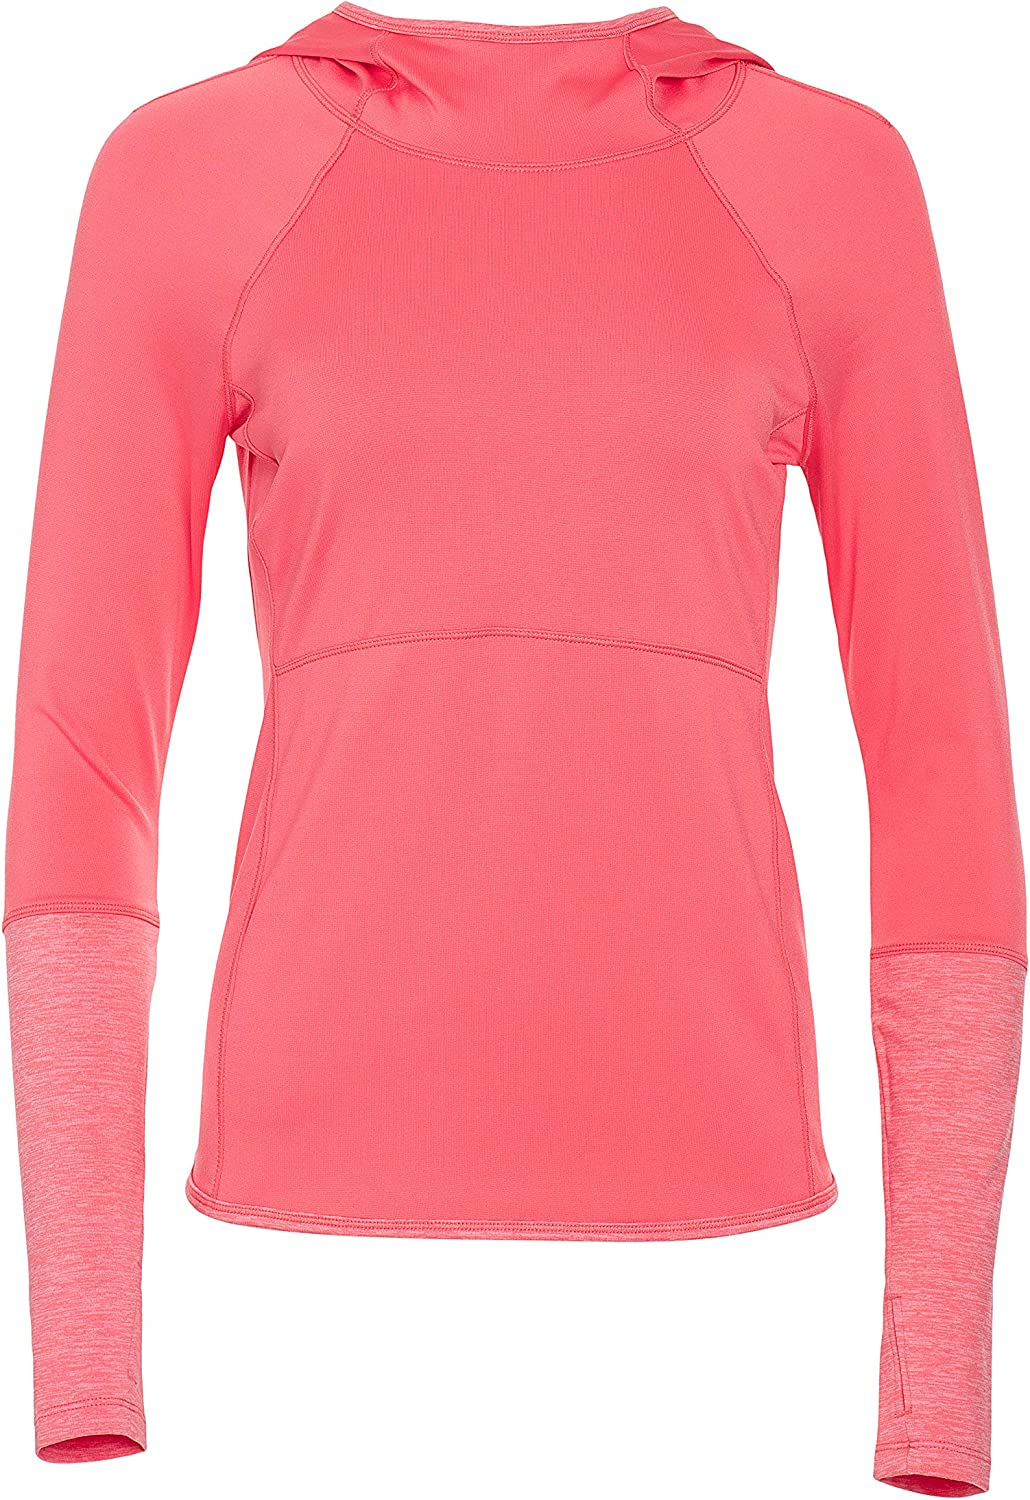 Layer 8 Ladies Long Sleeve Hooded Top with Side Pulls